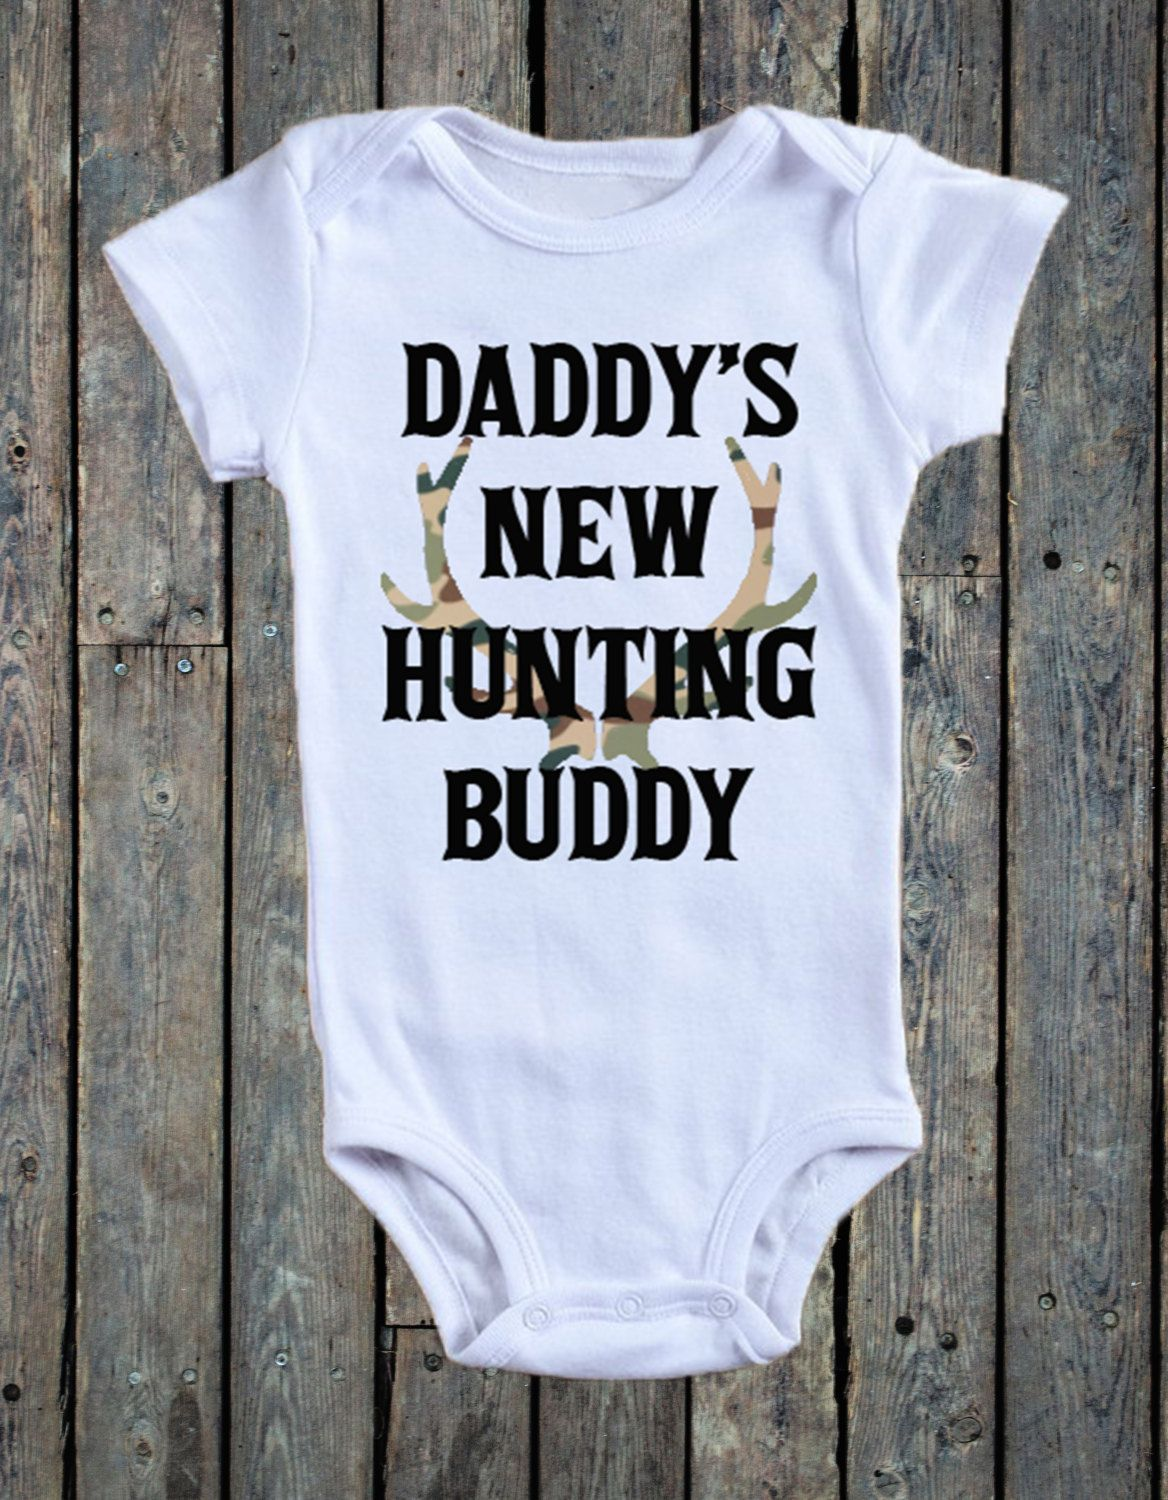 05d211b75c593 Daddy's New Hunting Buddy Onesie®/ Hunting Onesie®/ Deer Onesie®/ Camo  Onesie®/ Baby Boy Onesie®/ Baby boy bodysuit/ dove hunting/ by  RustikBoutique on Etsy